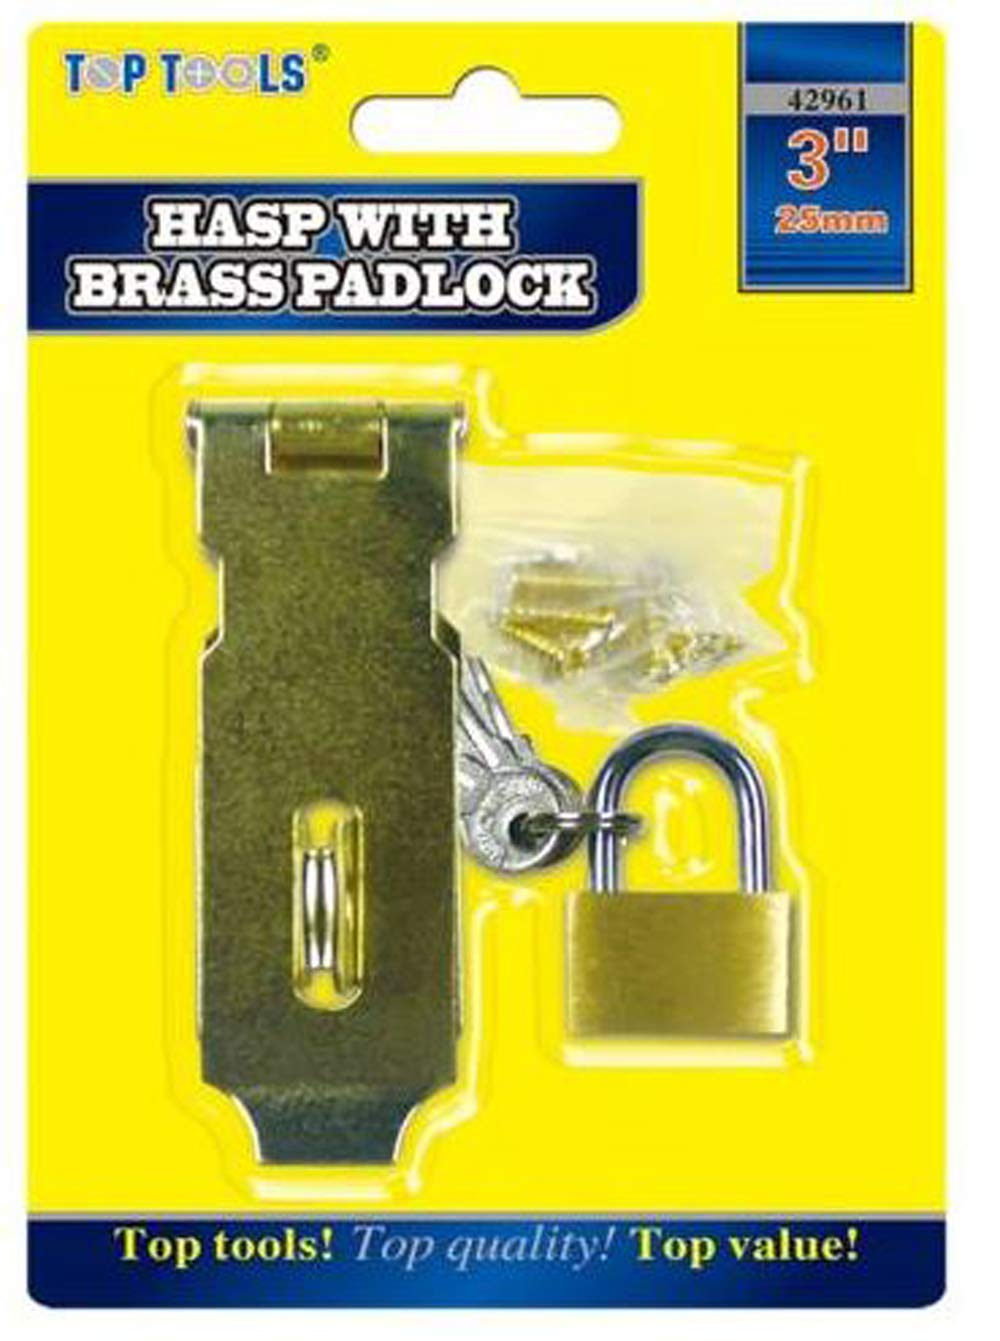 3' Safety Hasp & Staple Gate Door Shed Latch Lock Box Chest with Brass Padlock DINA INTERNATIONAL